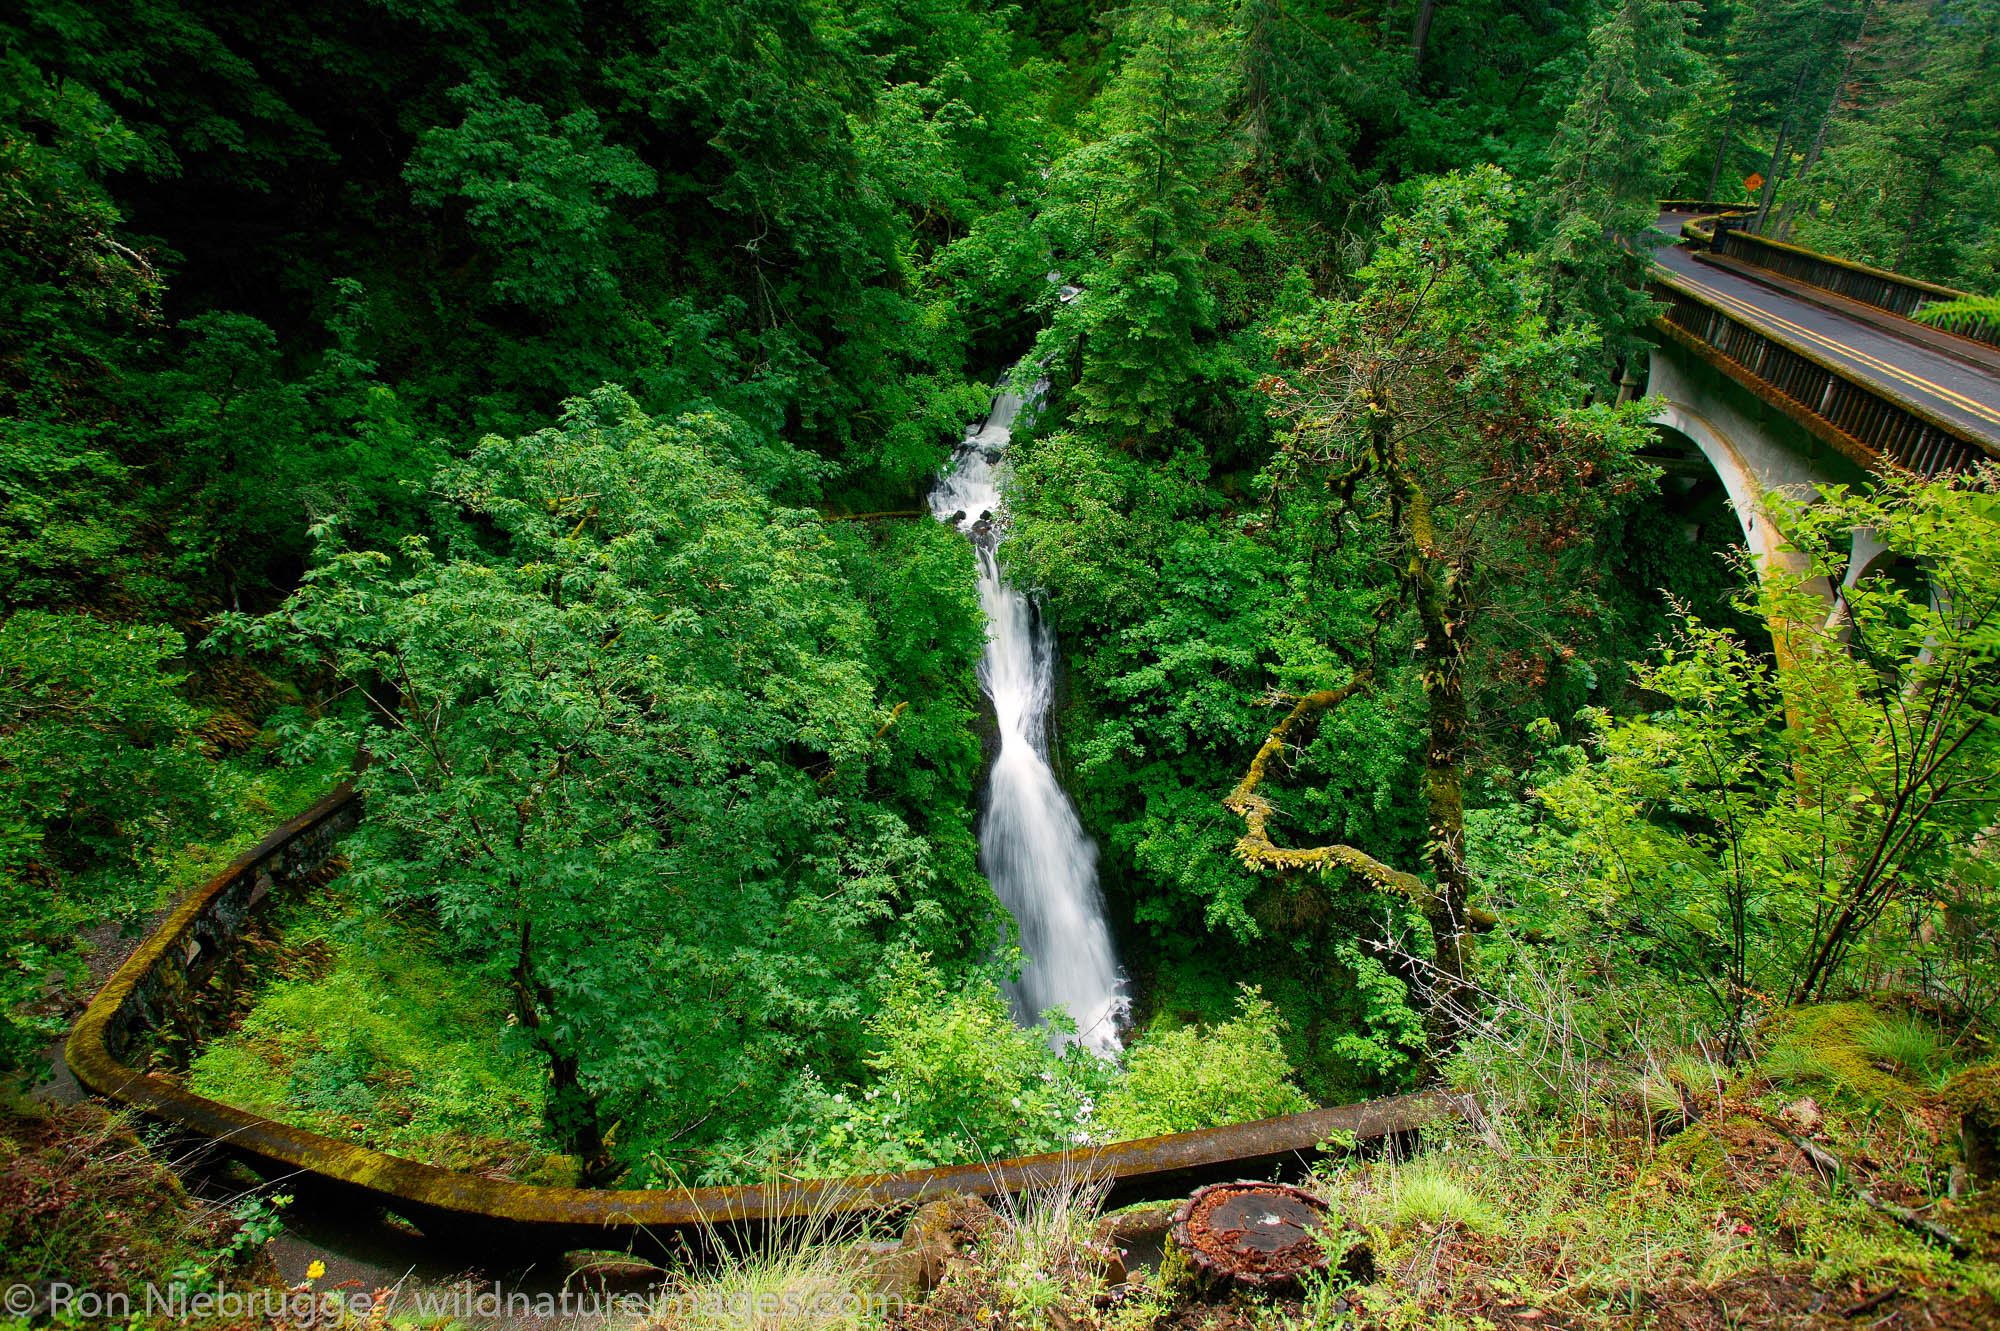 The Historic Columbia River Highway at the Shepperds Dell waterfall, Columbia River Gorge National Scenic Area, Oregon.